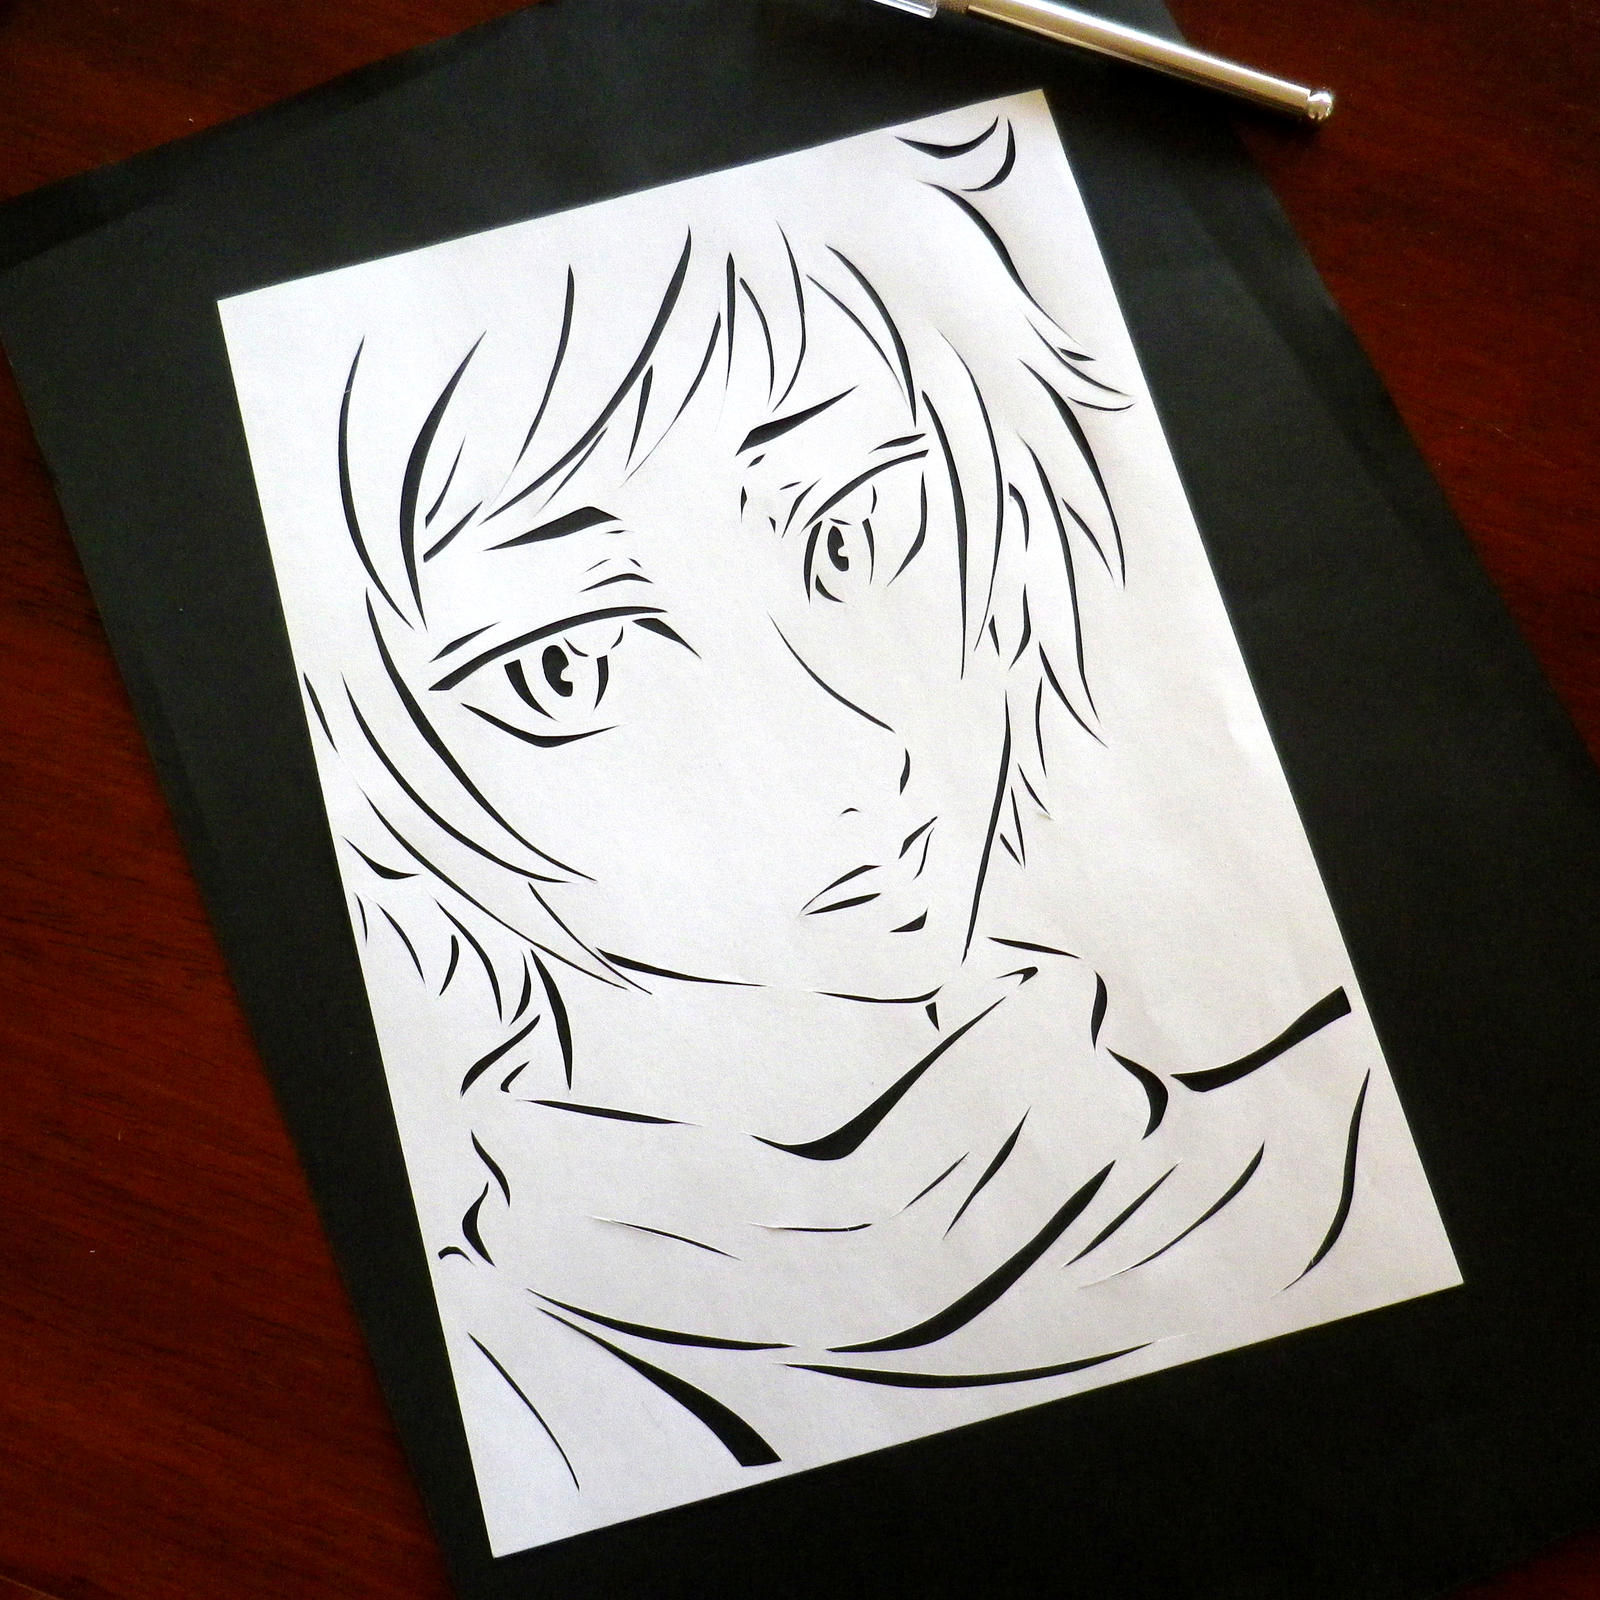 Anime Paper Cut Out Stencil By Jadziah On DeviantArt